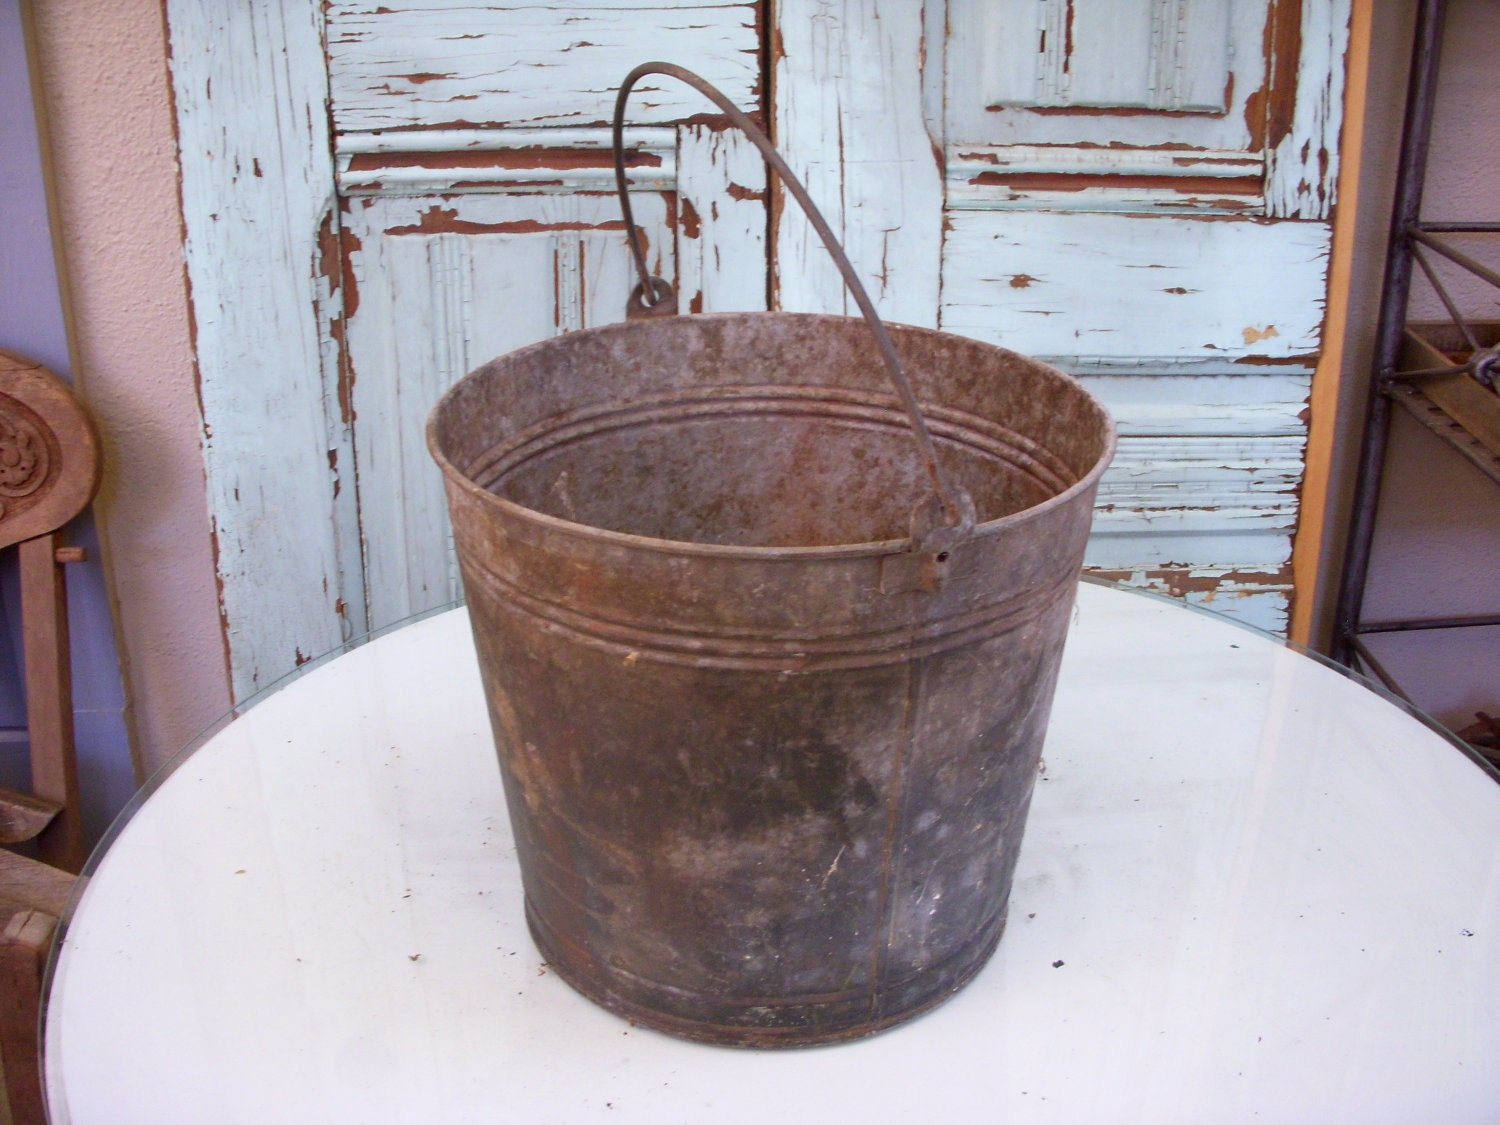 Uncategorized Vintage Metal Bucket antique bucket shabby vintage dented metal  antique